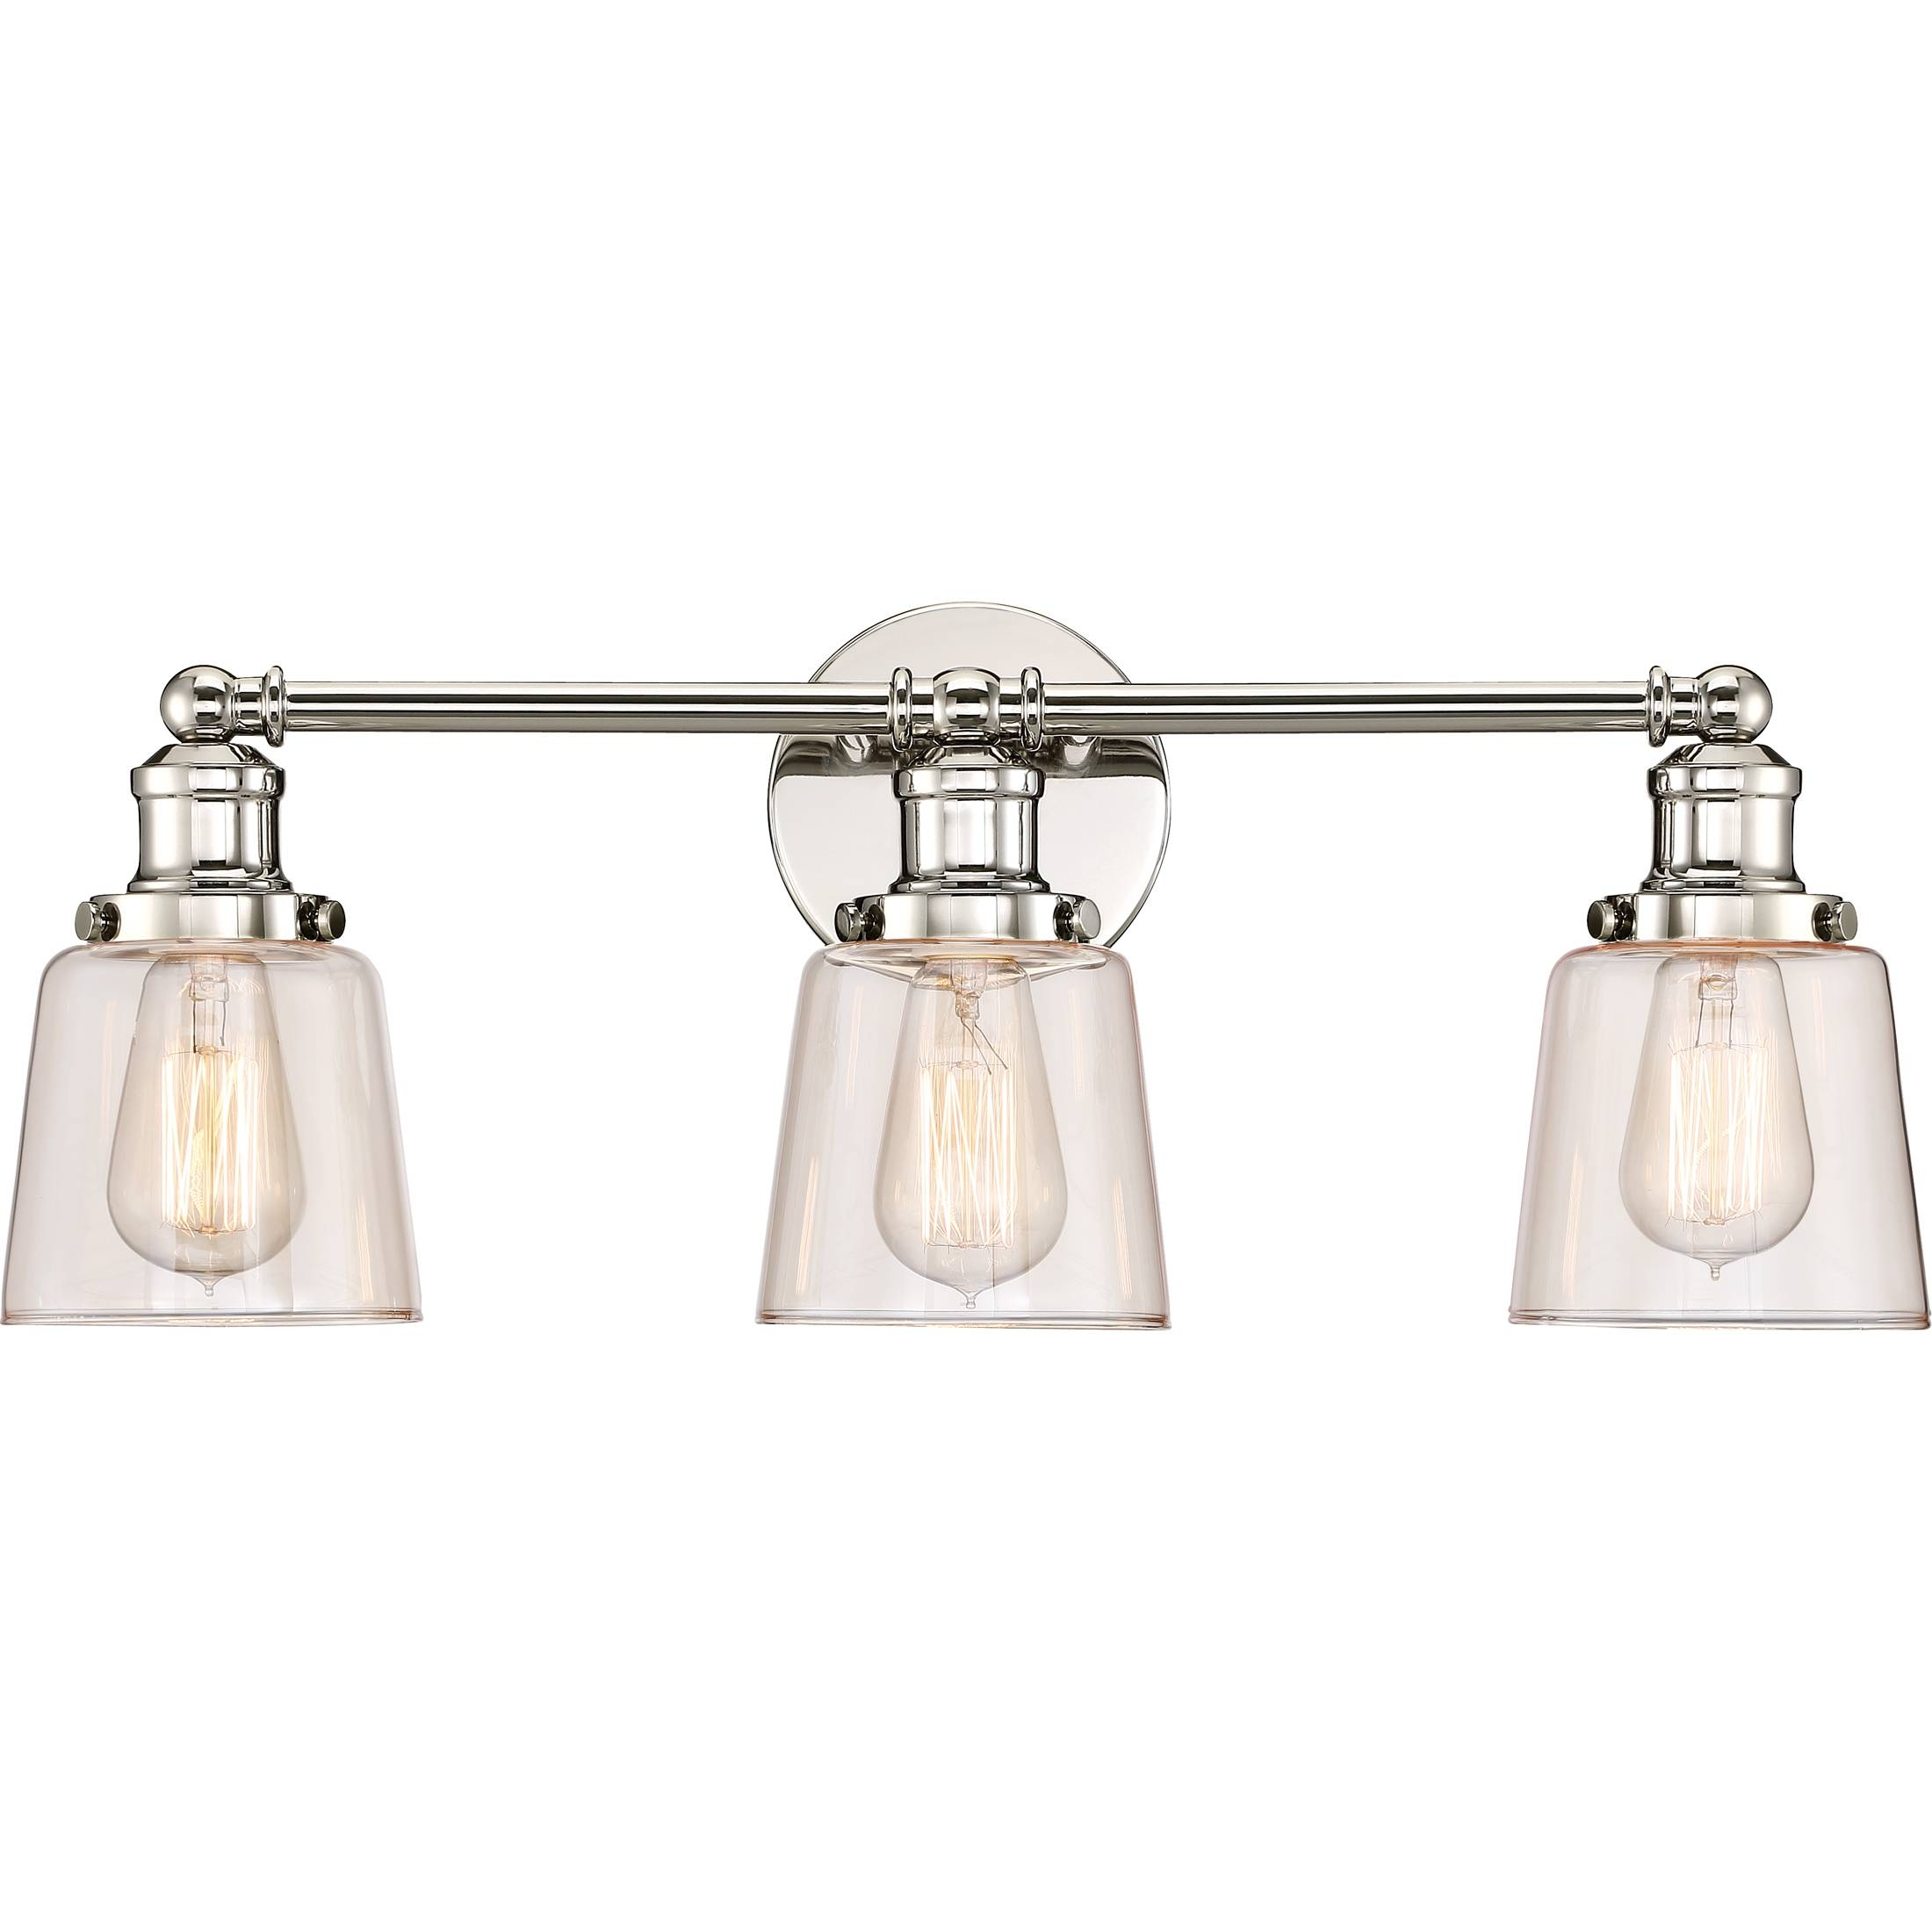 Quoizel|Uni8603Pk|Bath Fixture 3 Lgt Plsh Nickl for Union Lighting Pendants (Image 11 of 15)